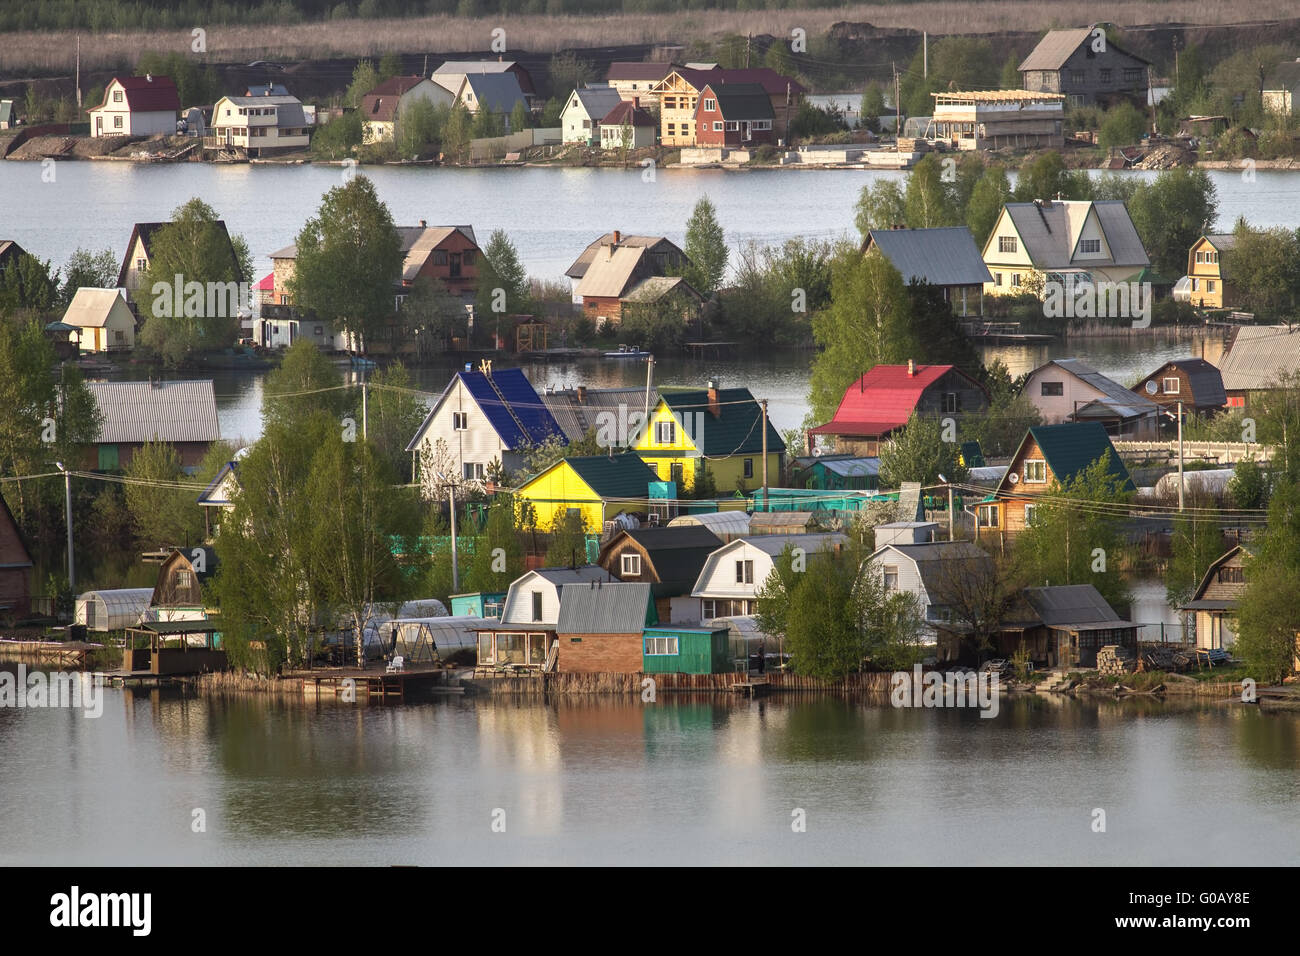 Cottage settlement - Stock Image